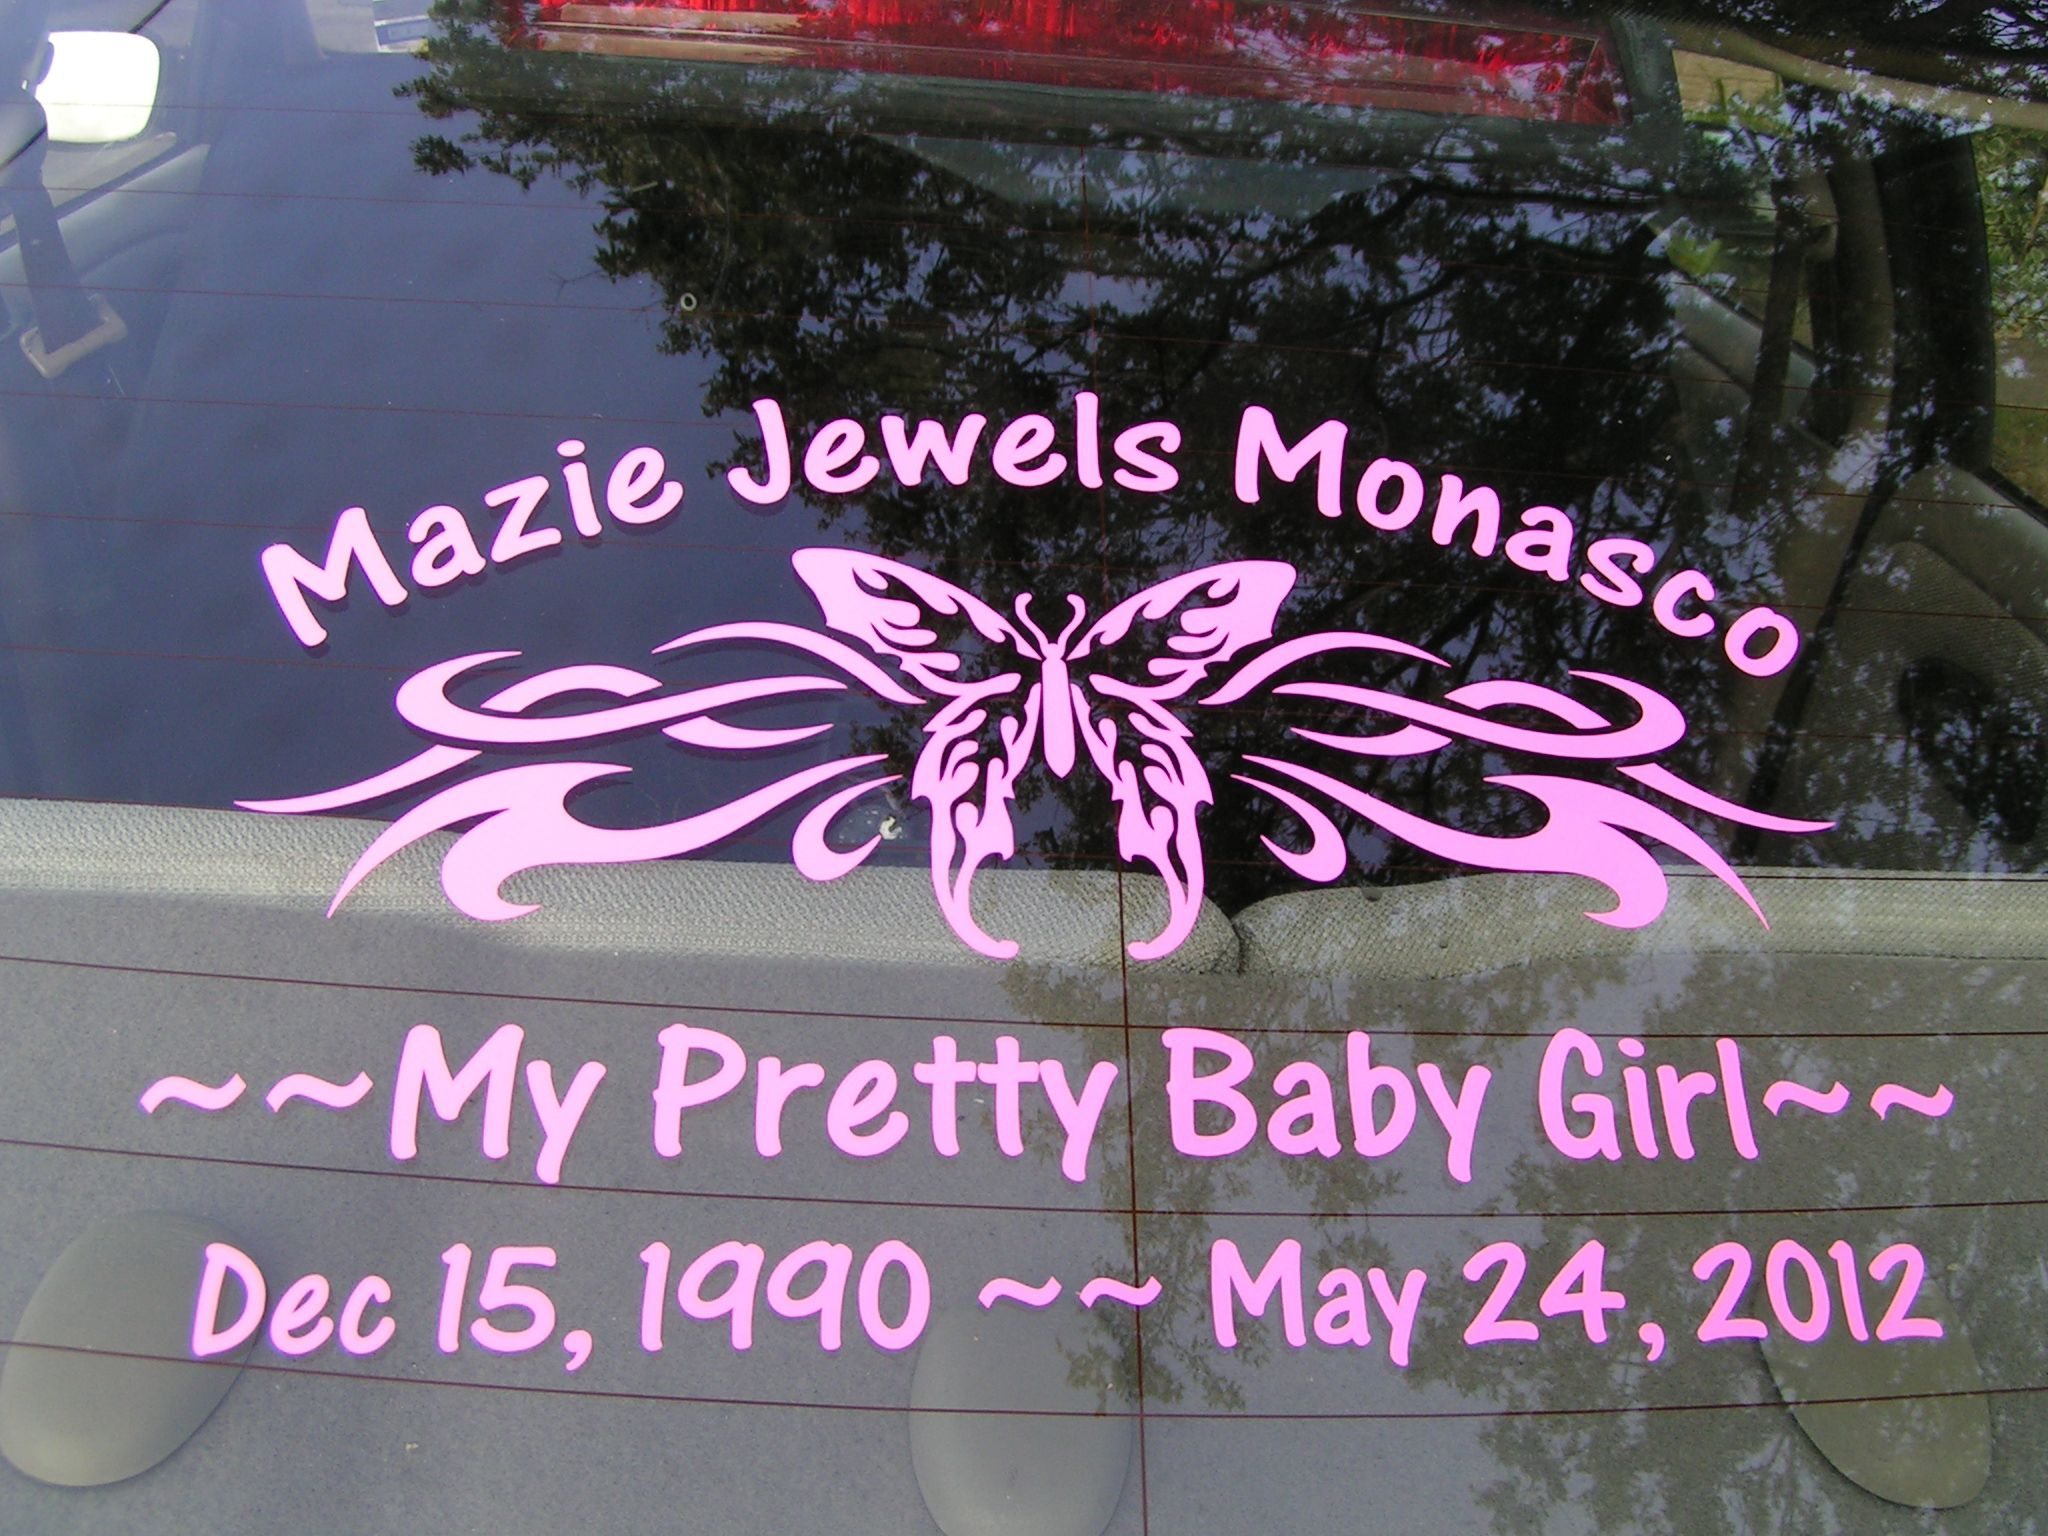 Design my own car sticker - Tribal Butterfly Decal Design Customized To Make A Child S Memorial Decal Add Your Own Text